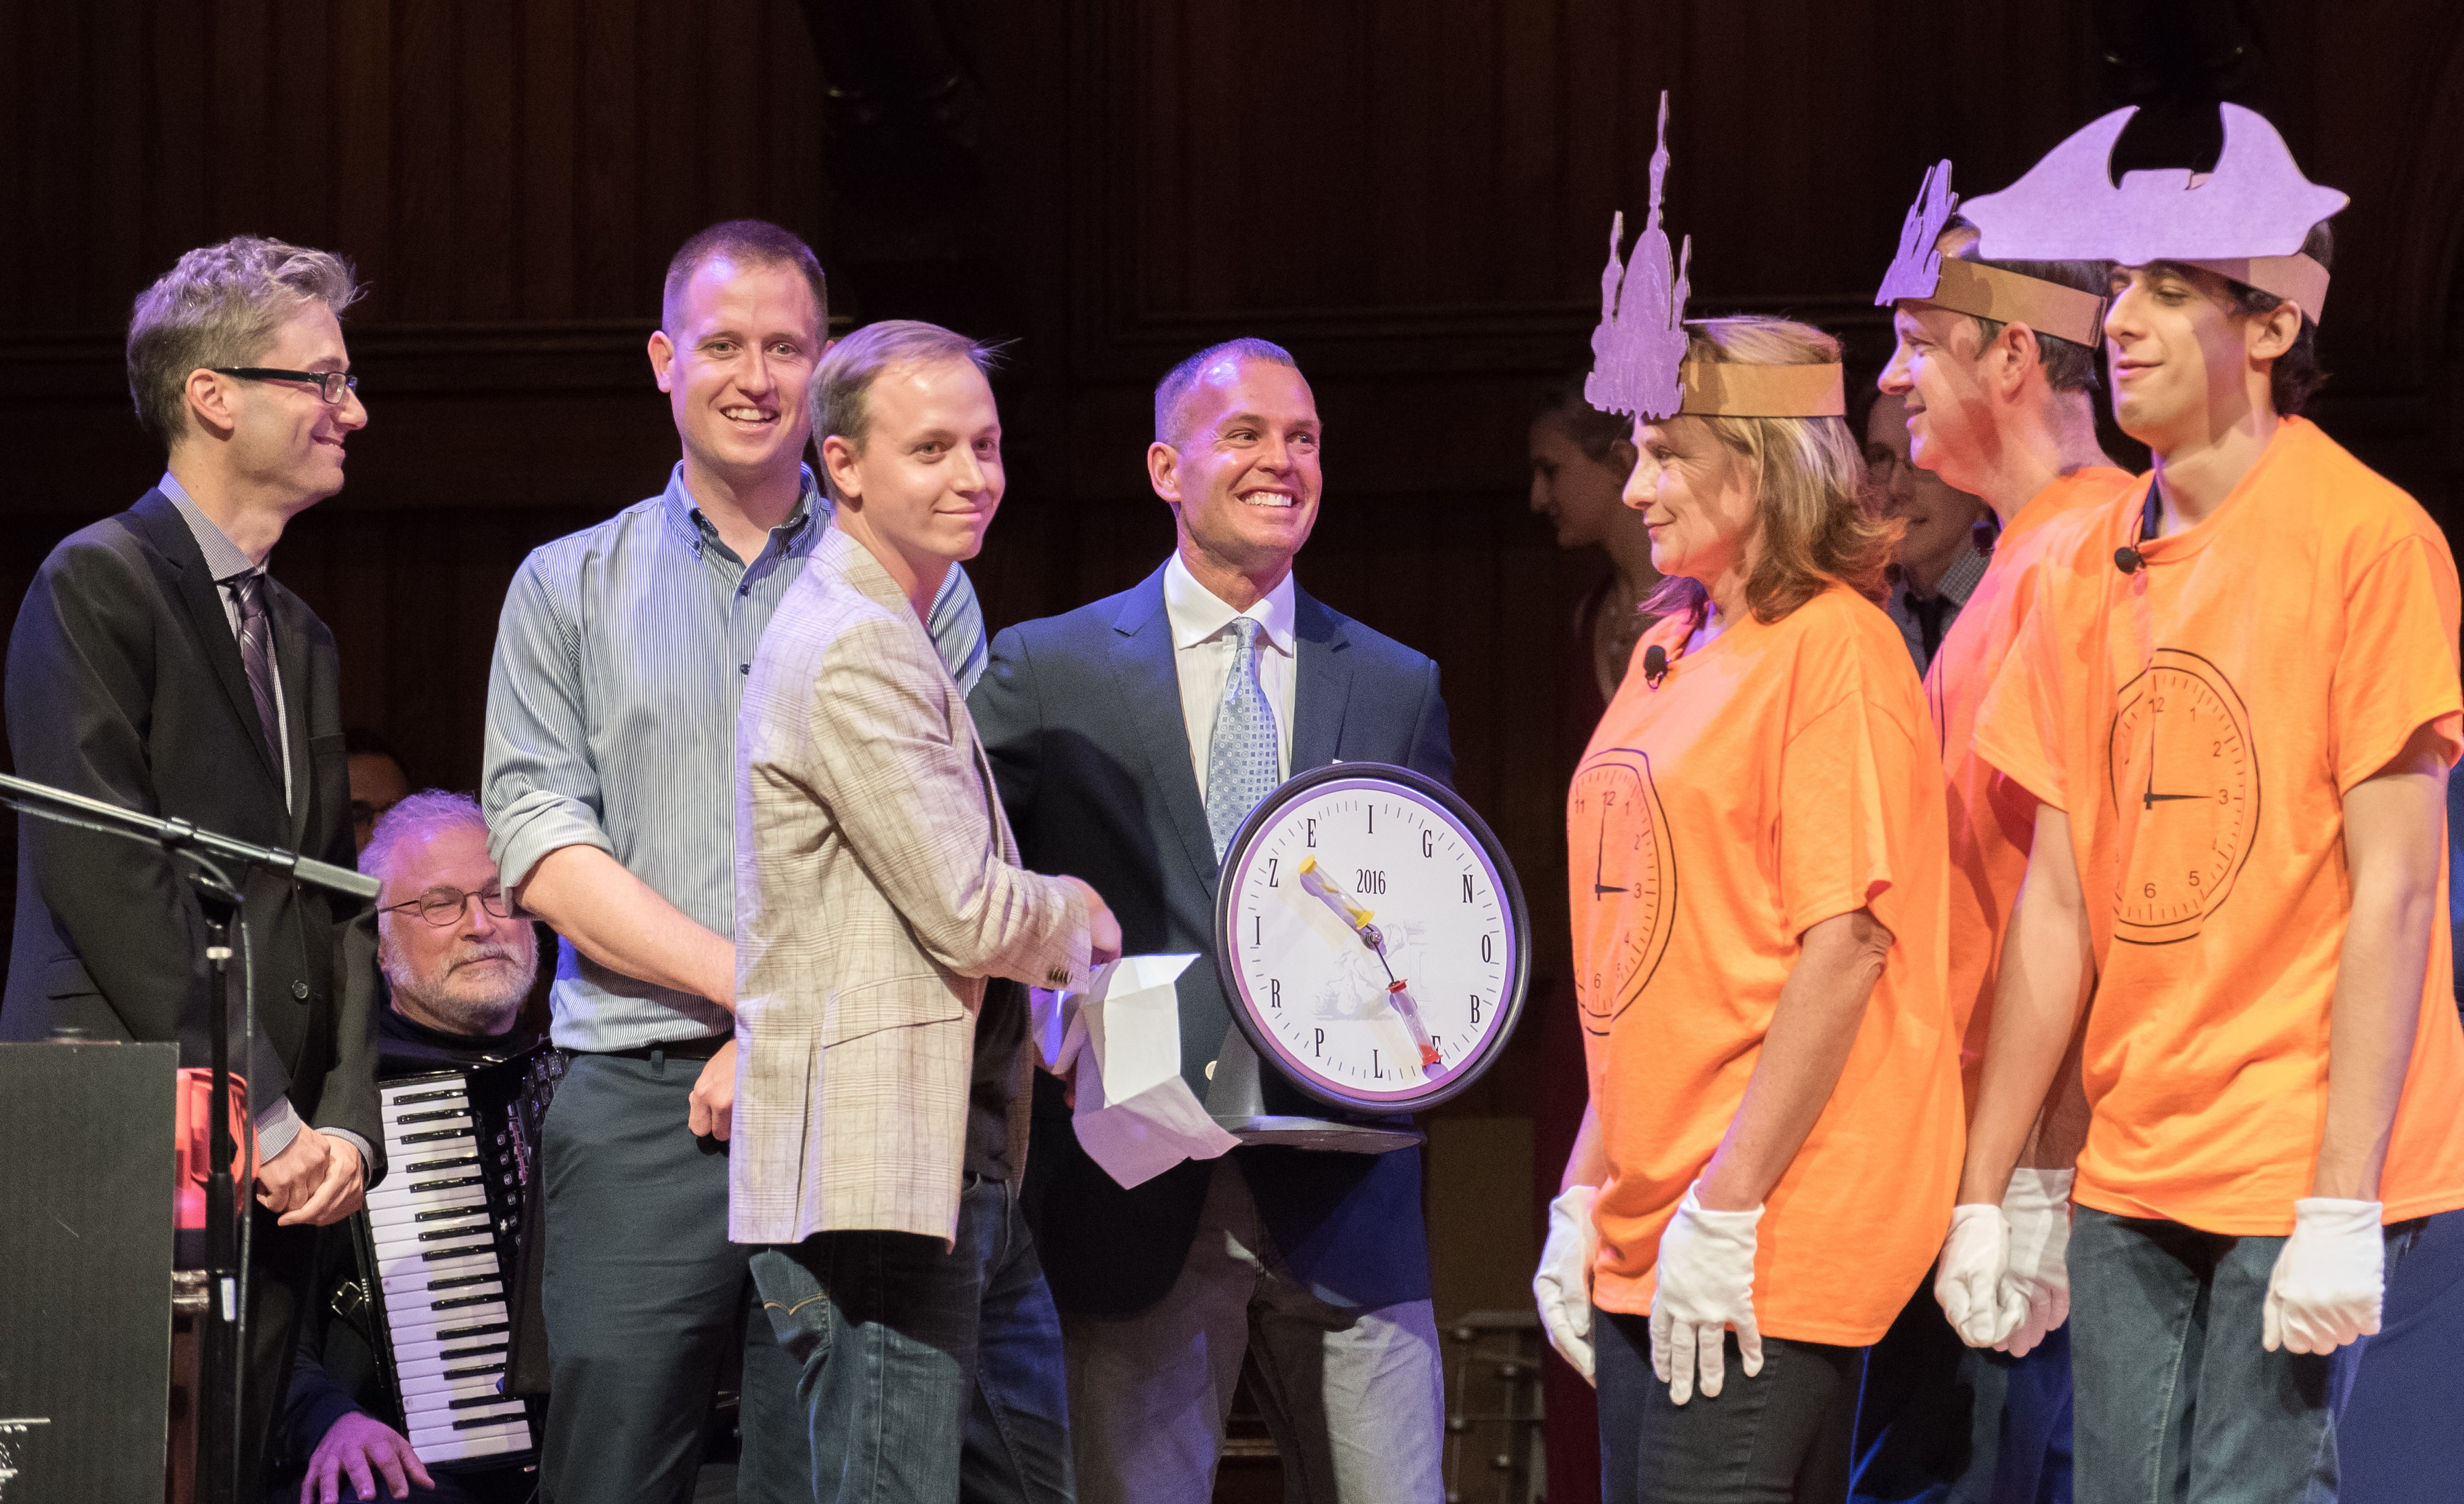 Peace Prize winners Derek Koehler, Nathaniel Barr, Gordon Pennycook, and Jonathan Fugelsang, and the Human Clocks. Credit: Alexey Eliseev